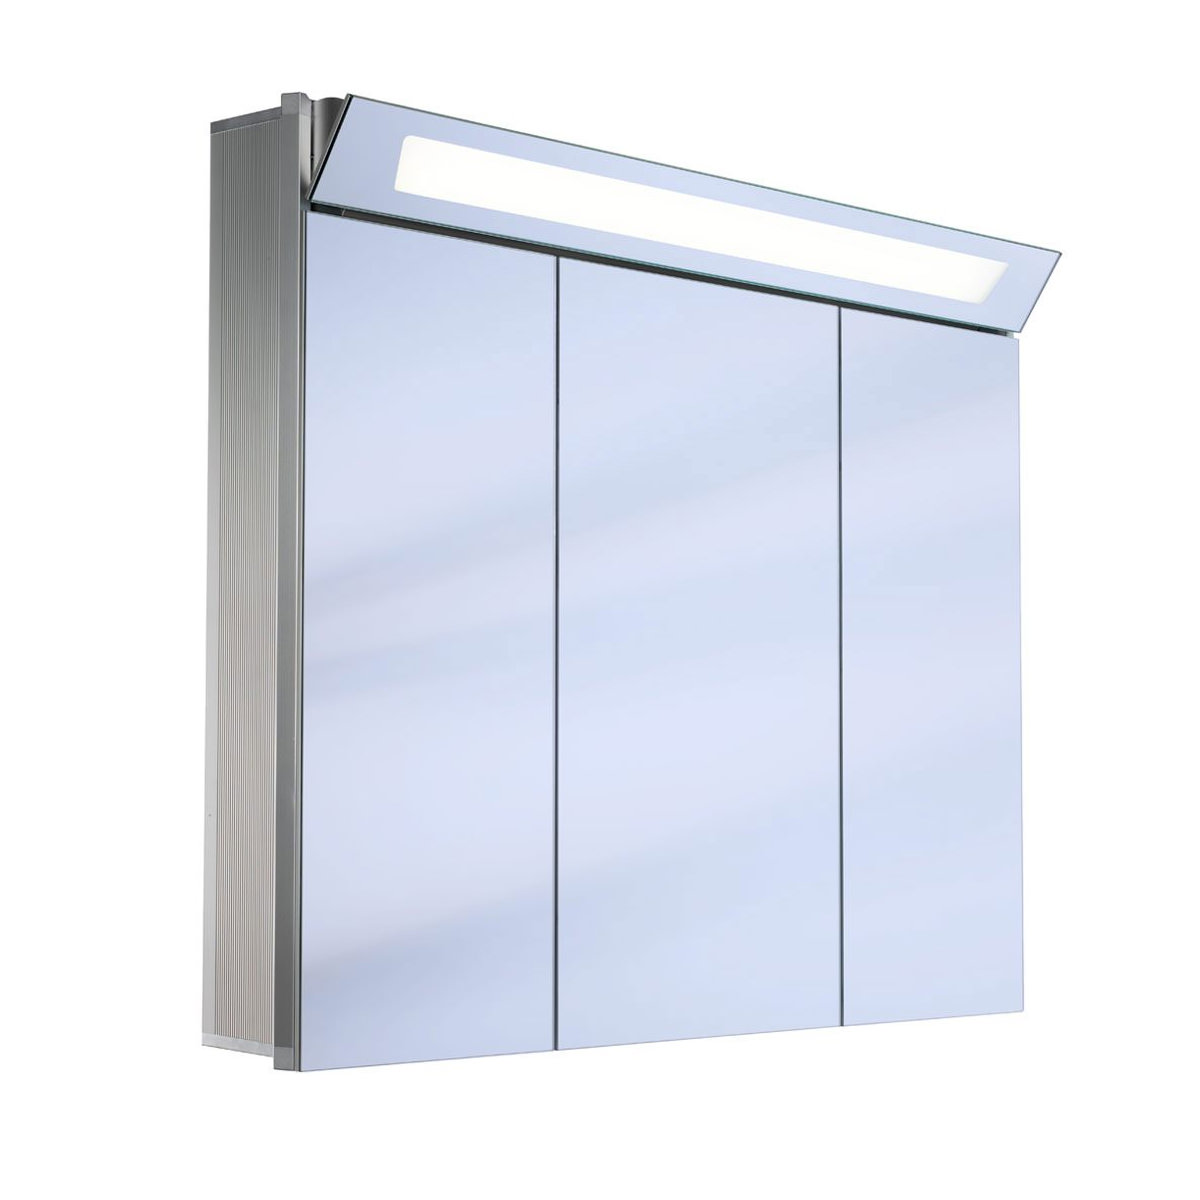 schneider capeline 3 door illuminated mirror cabinet 1000mm